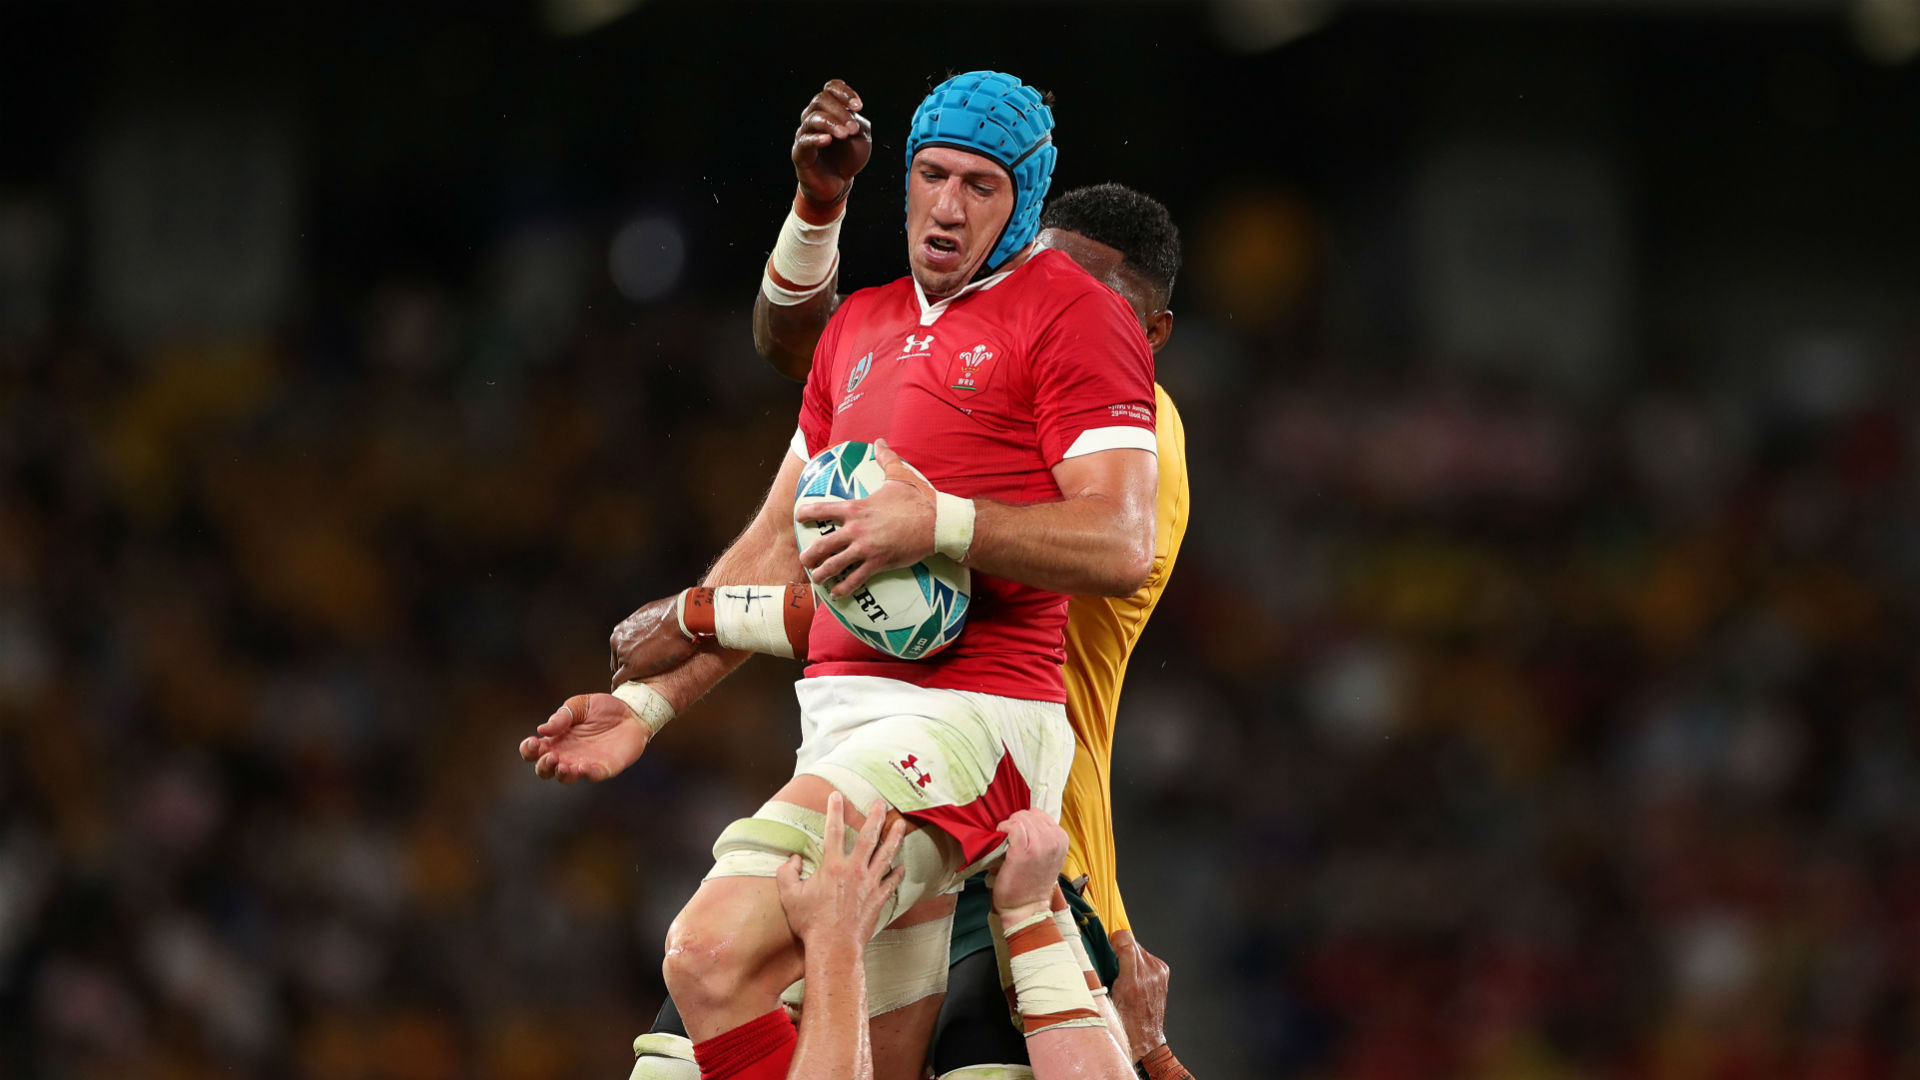 Tipuric captains Wales against Gatland's Barbarians as new coach Pivac names his first team